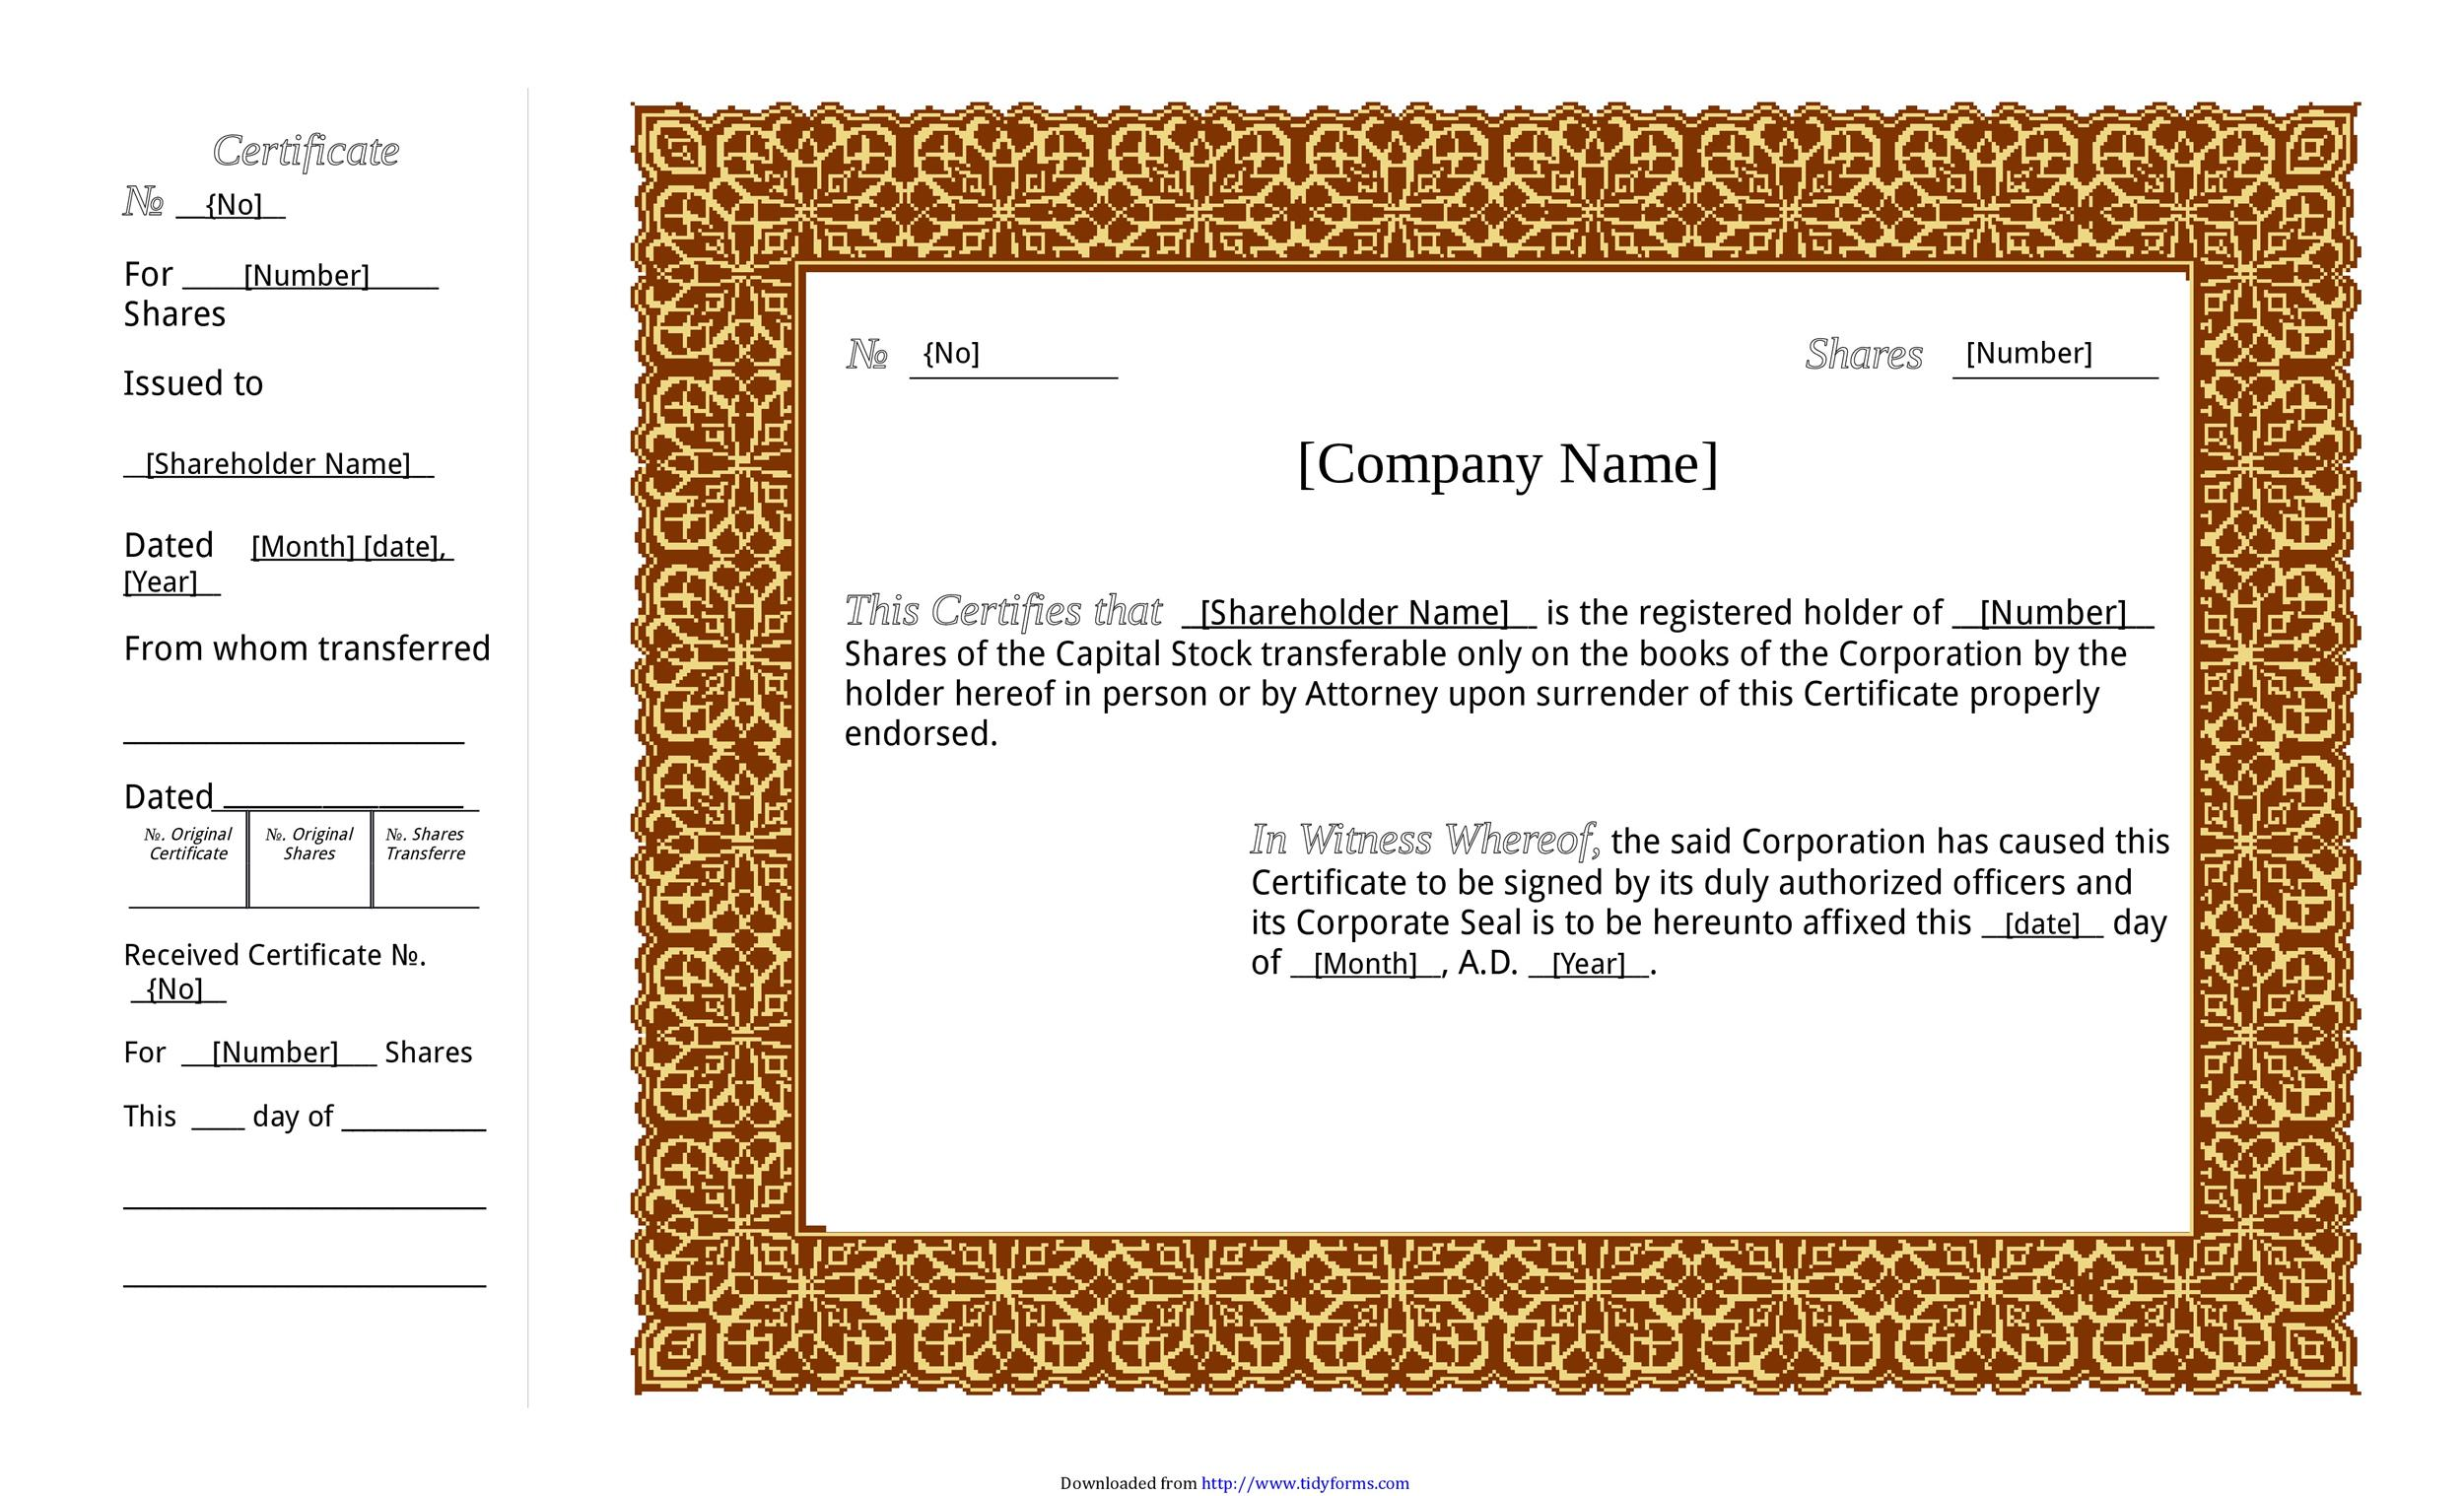 40+ Free Stock Certificate Templates (Word, PDF) - Template Lab - download free templates for word